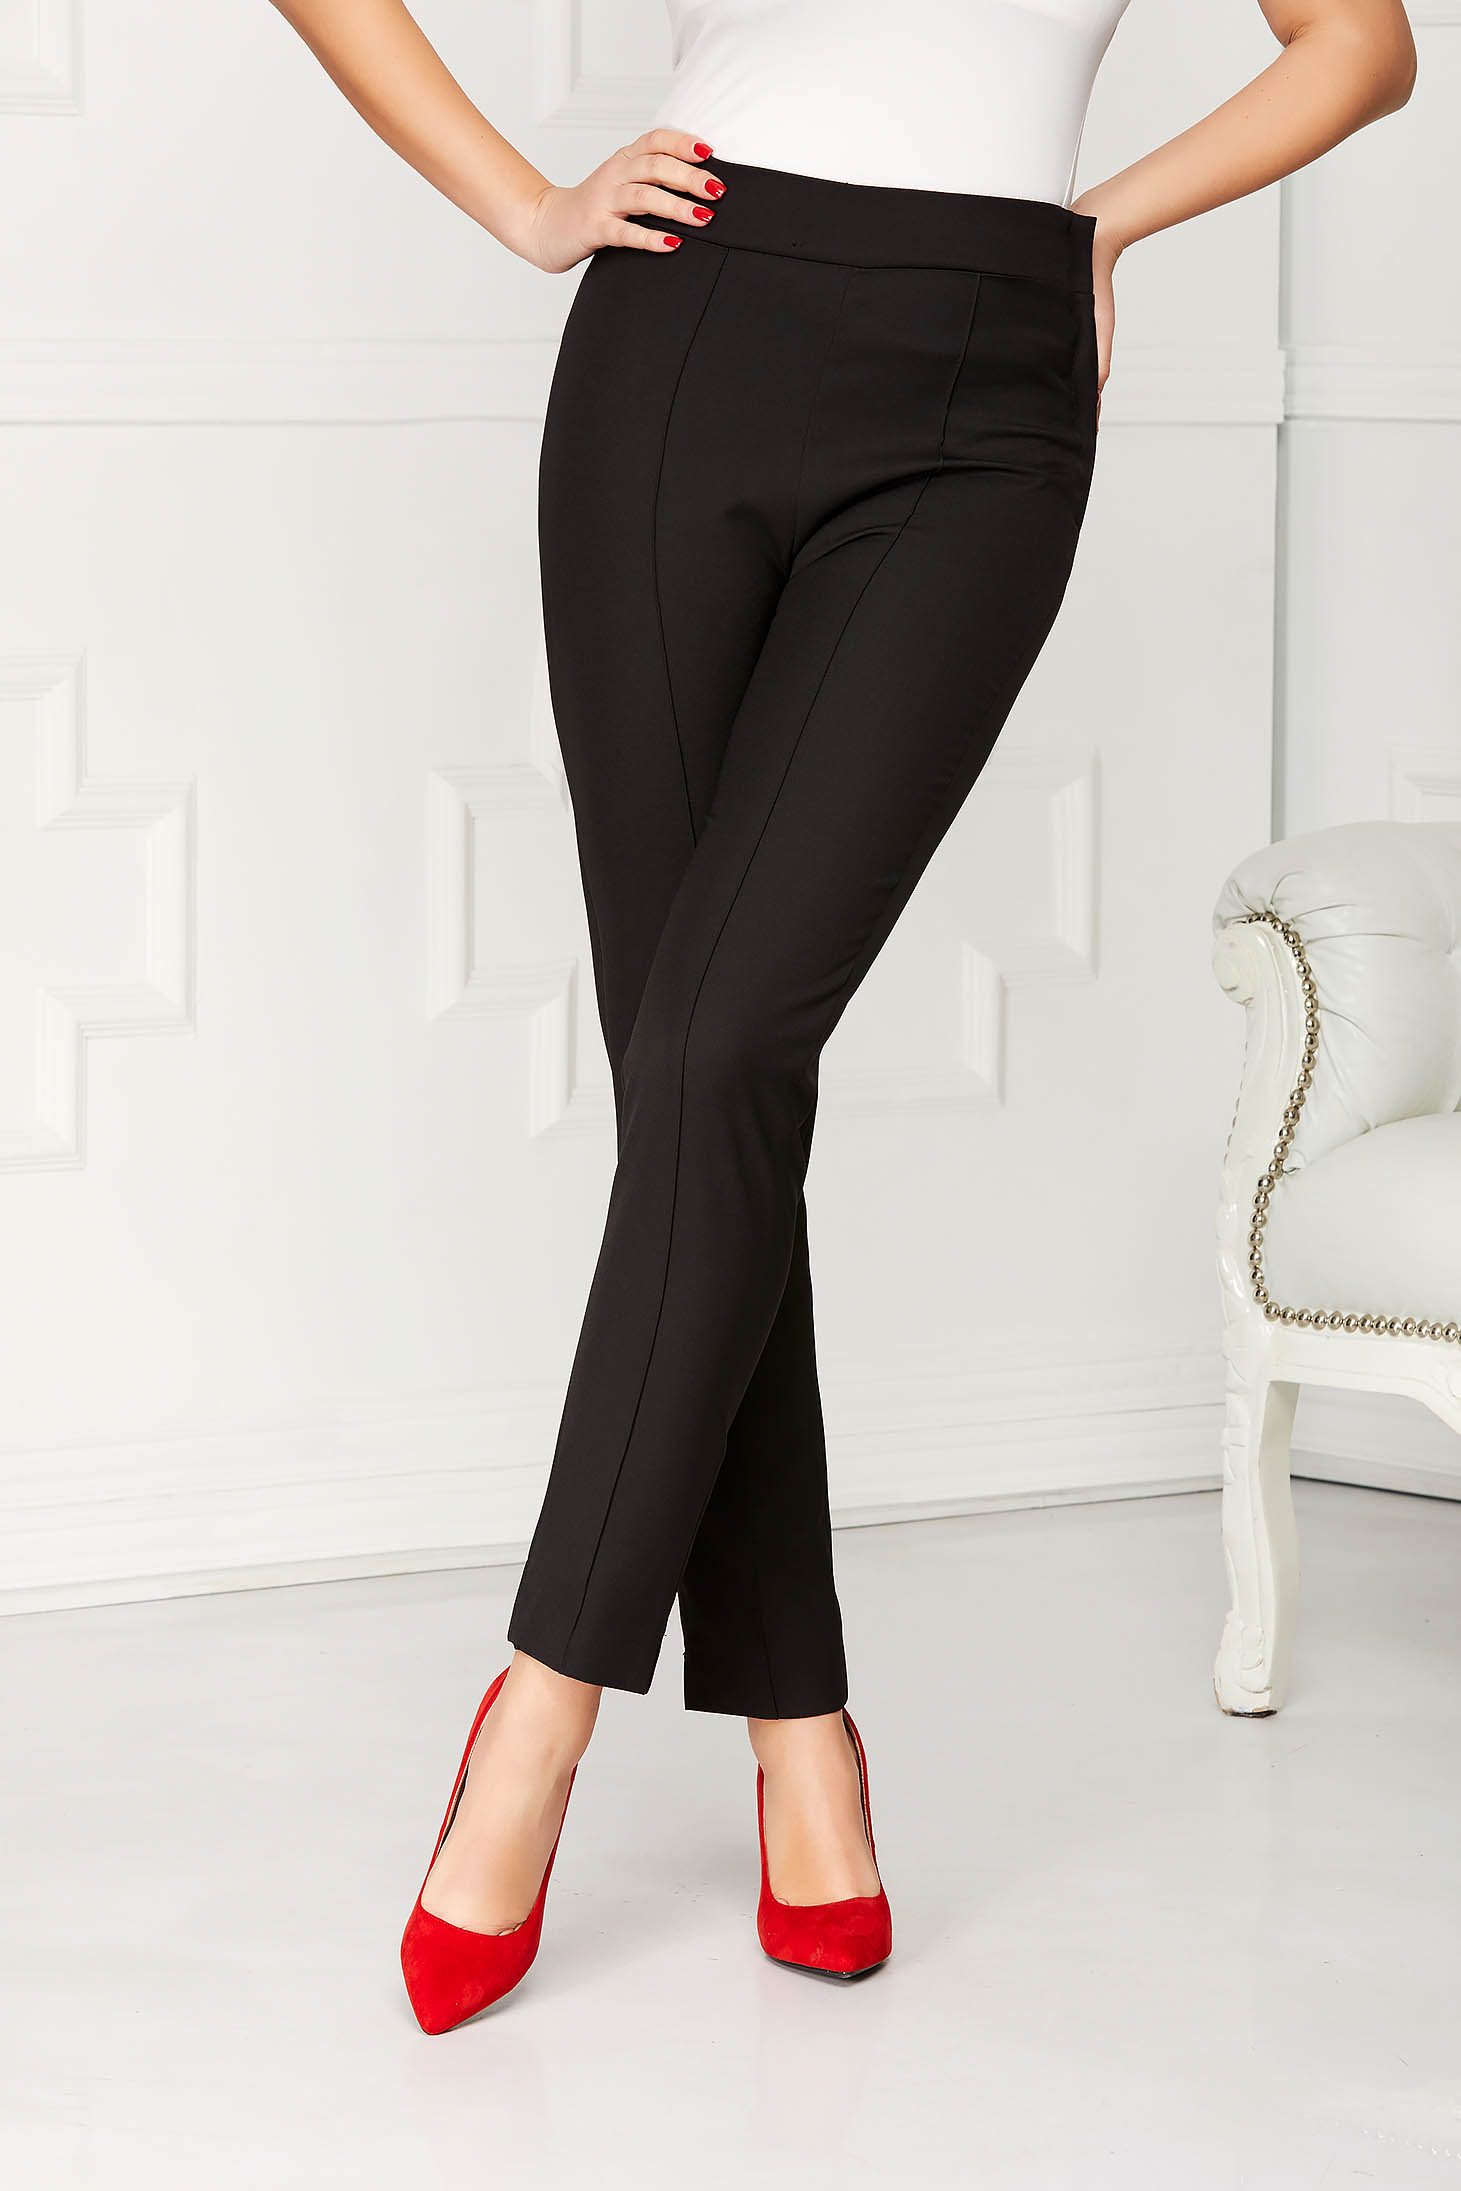 StarShinerS black elegant office trousers high waisted slightly elastic fabric with pockets